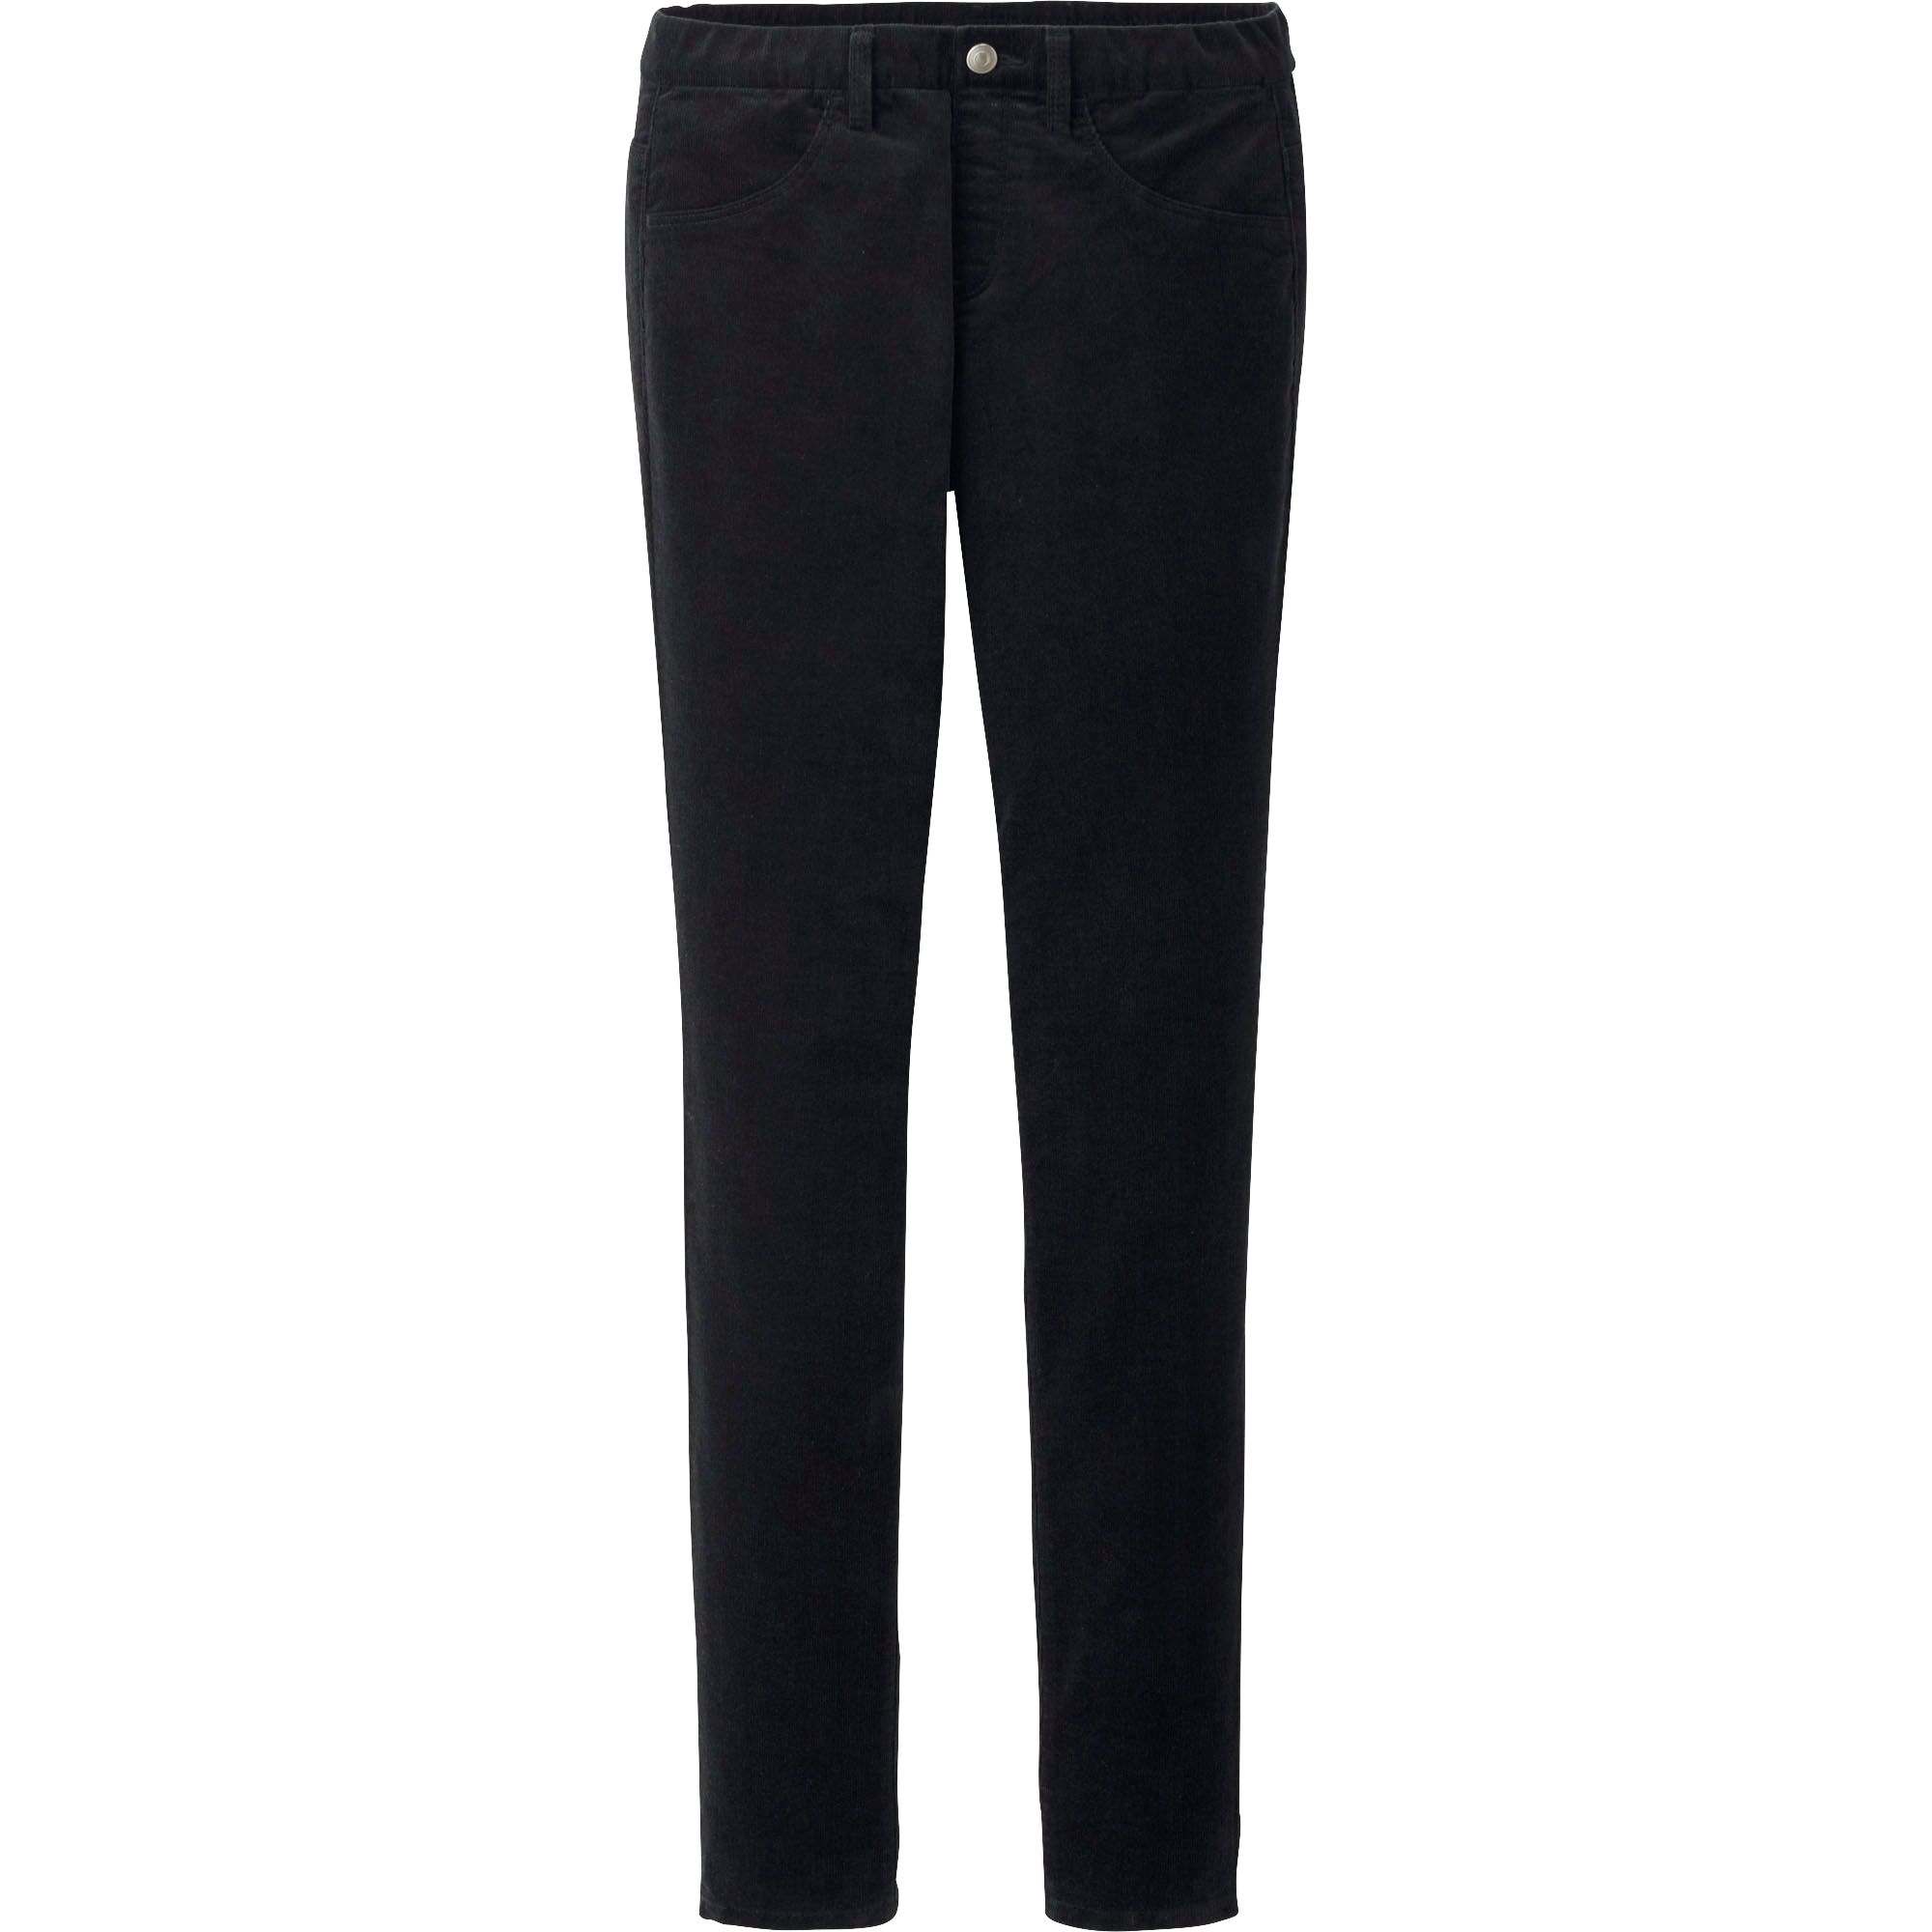 Find great deals on eBay for womens black corduroy pants. Shop with confidence.